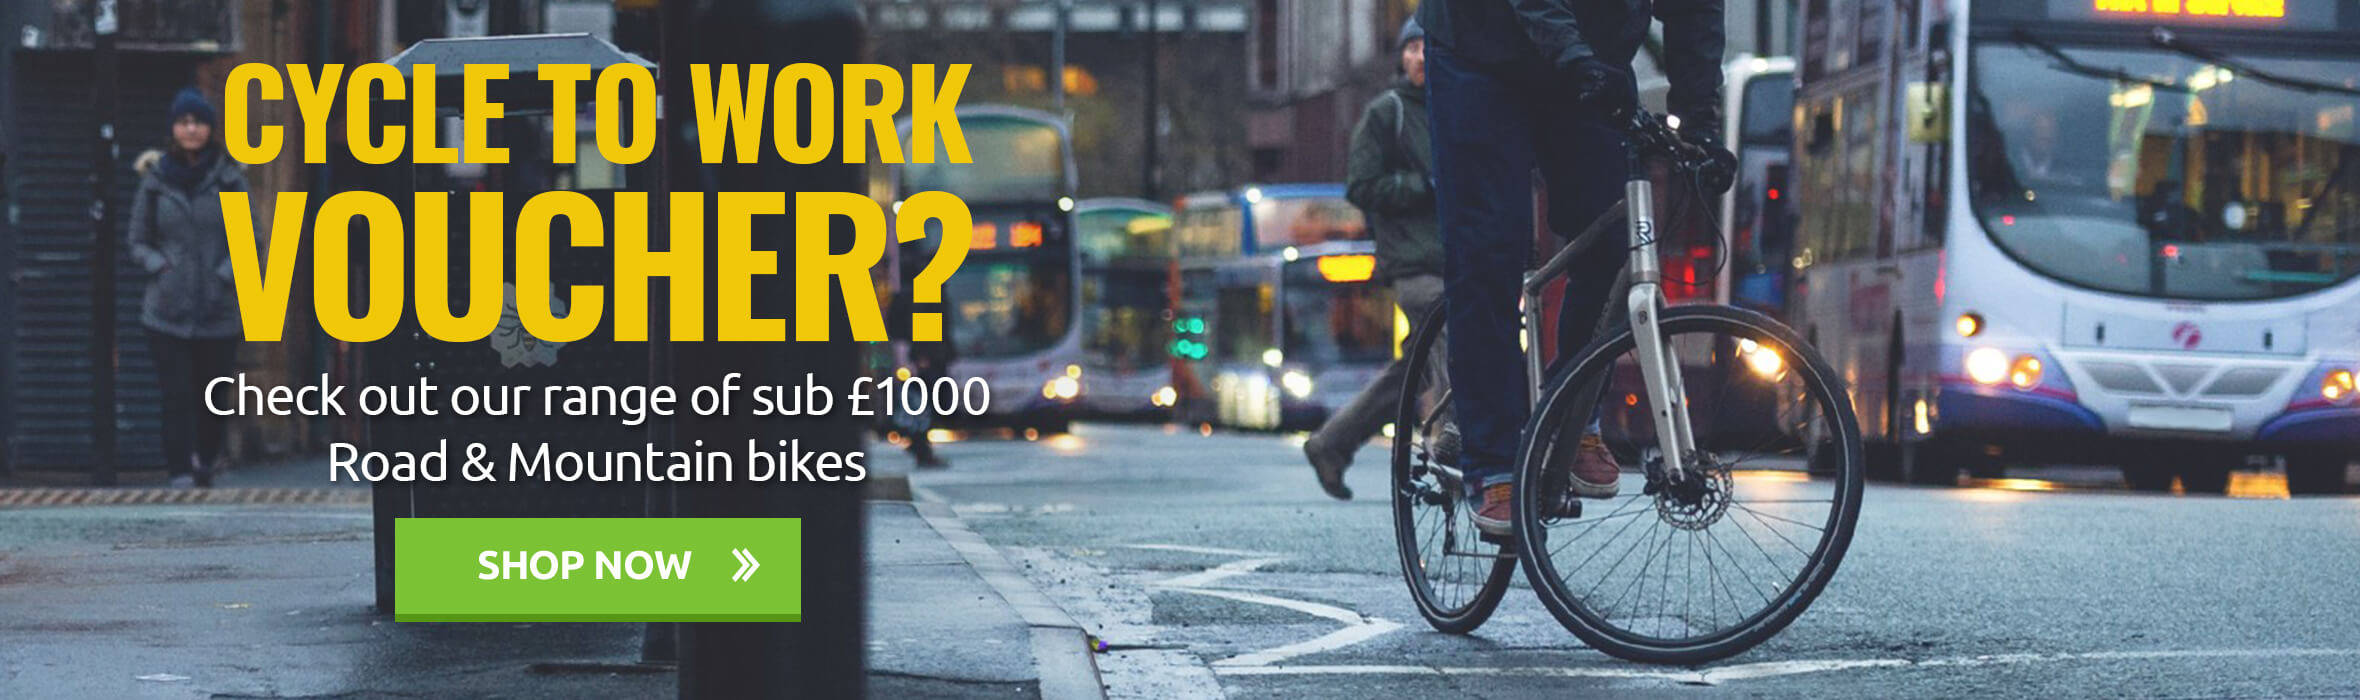 Cycle to work voucher? Check out our range of sub £1000 Road & Mountain bikes